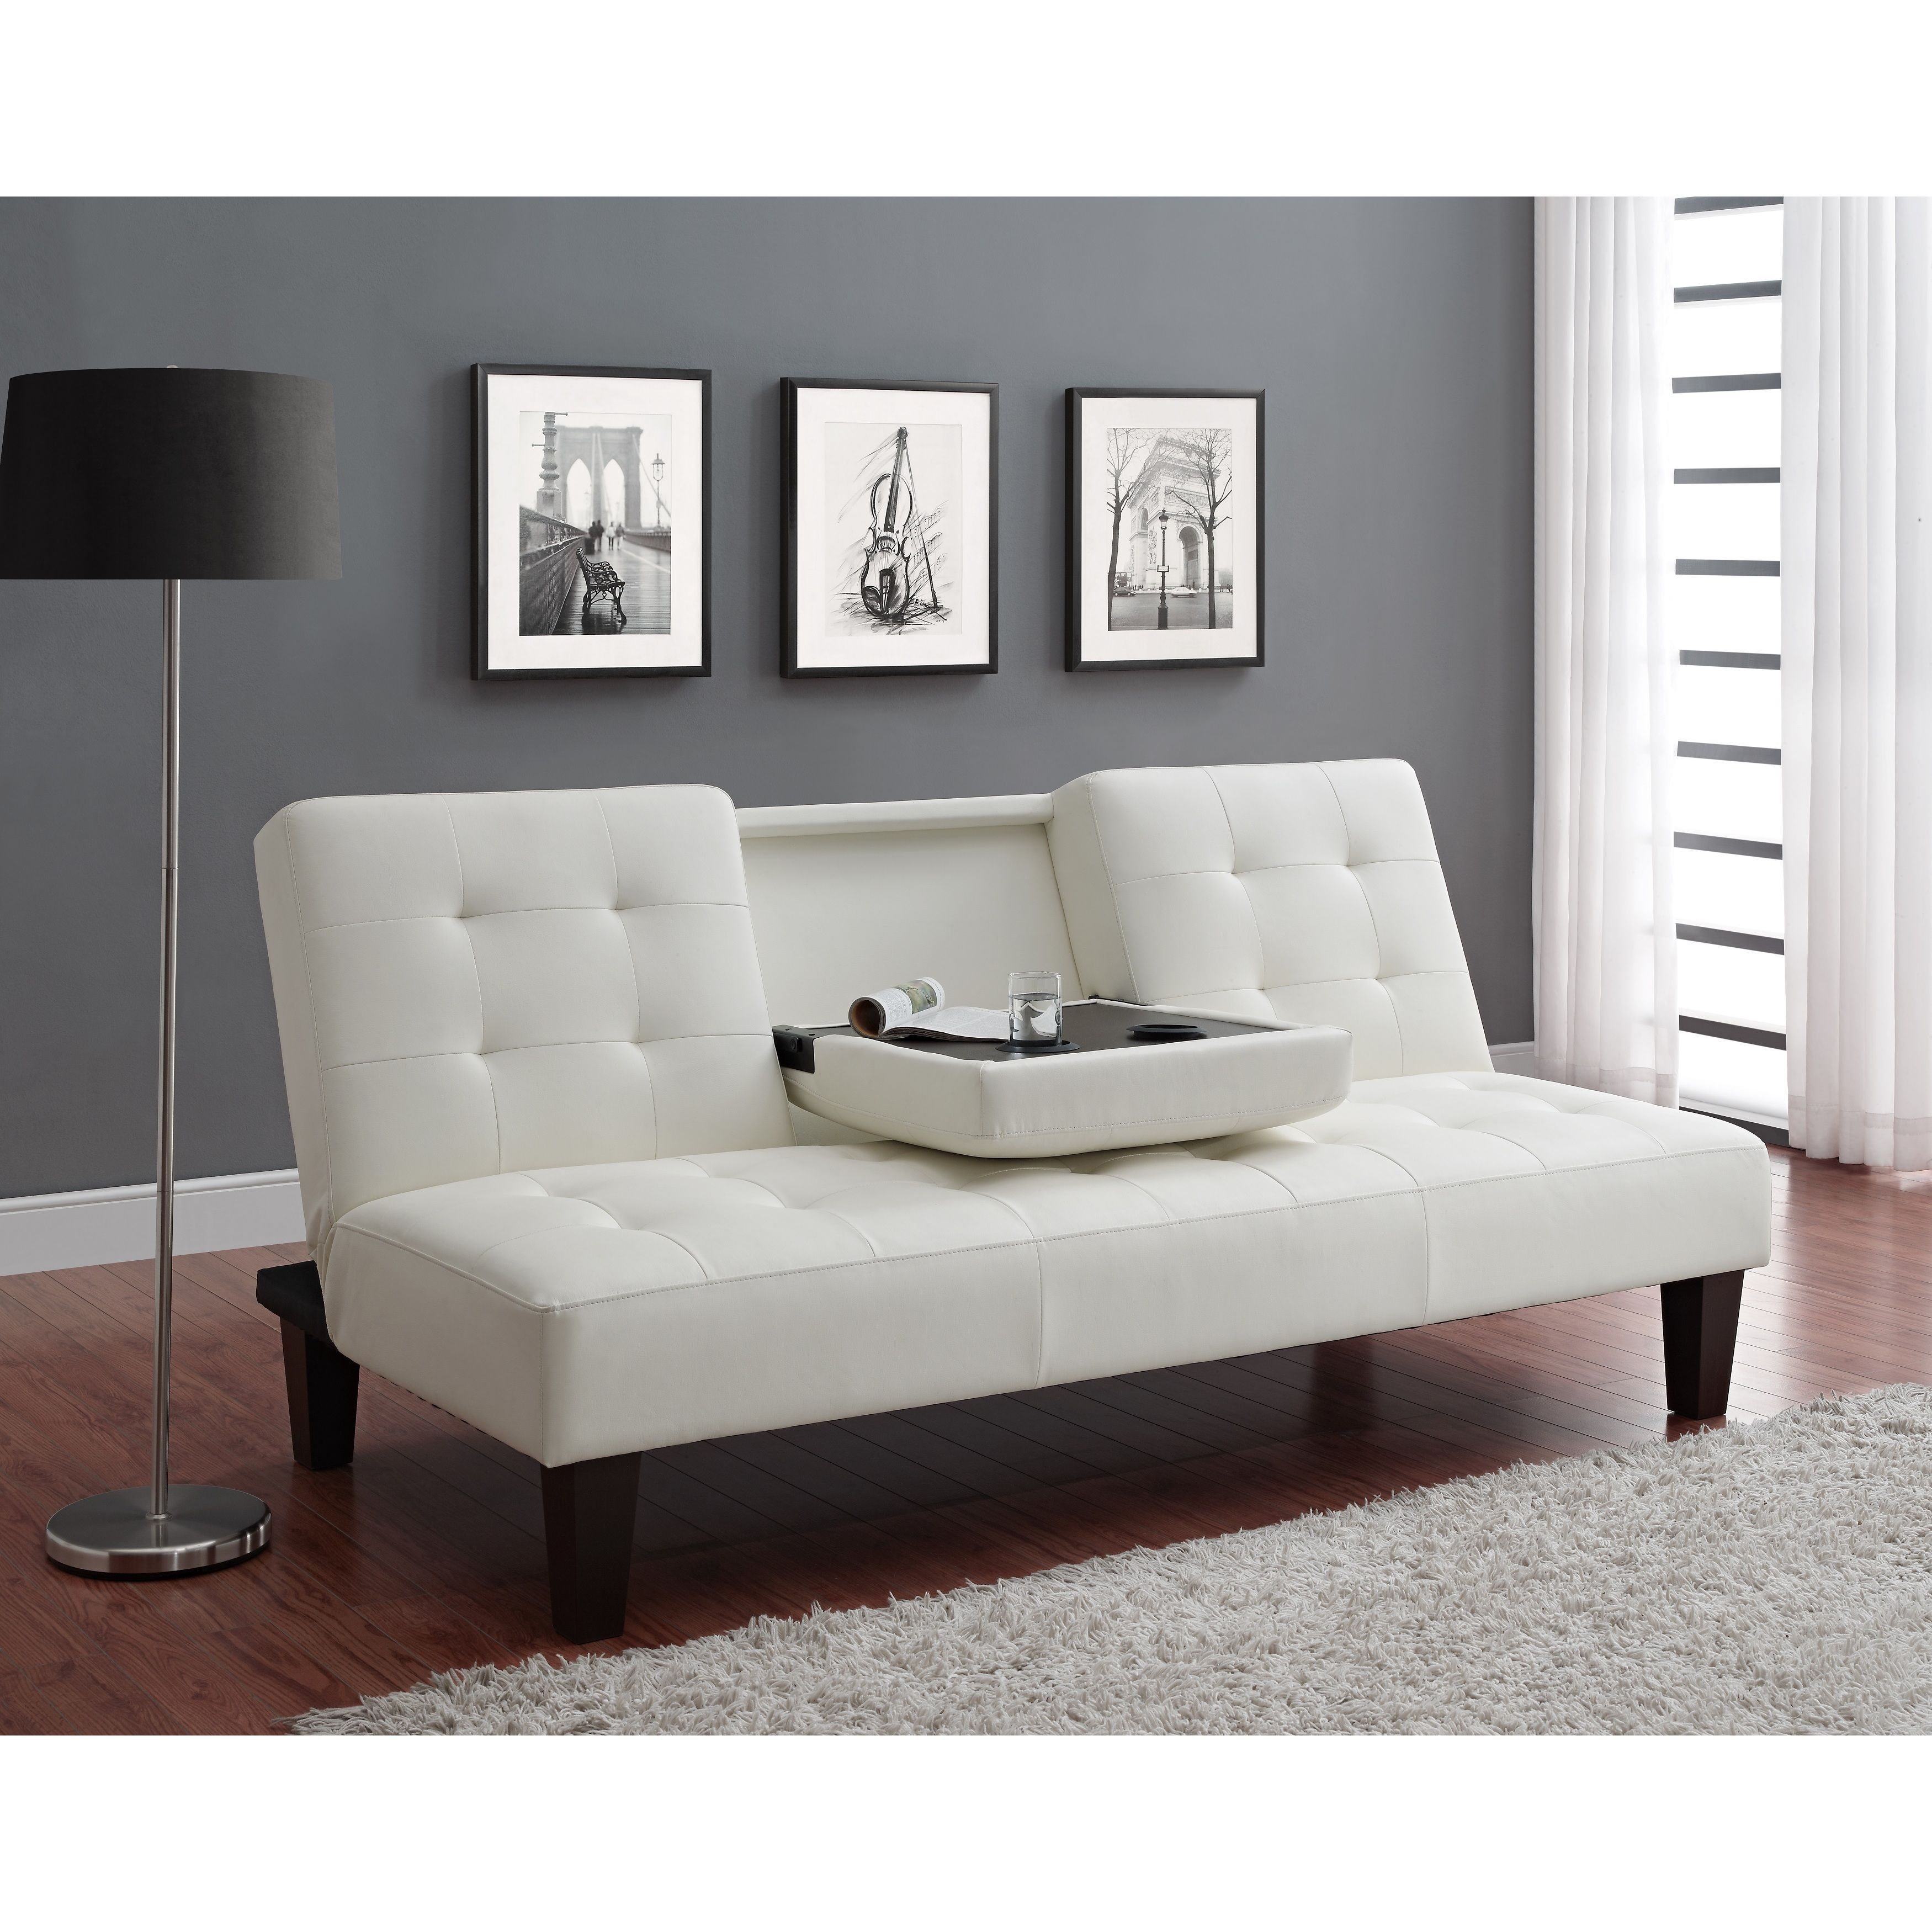 bed cheap sofabed home ava sofa linen textiles and